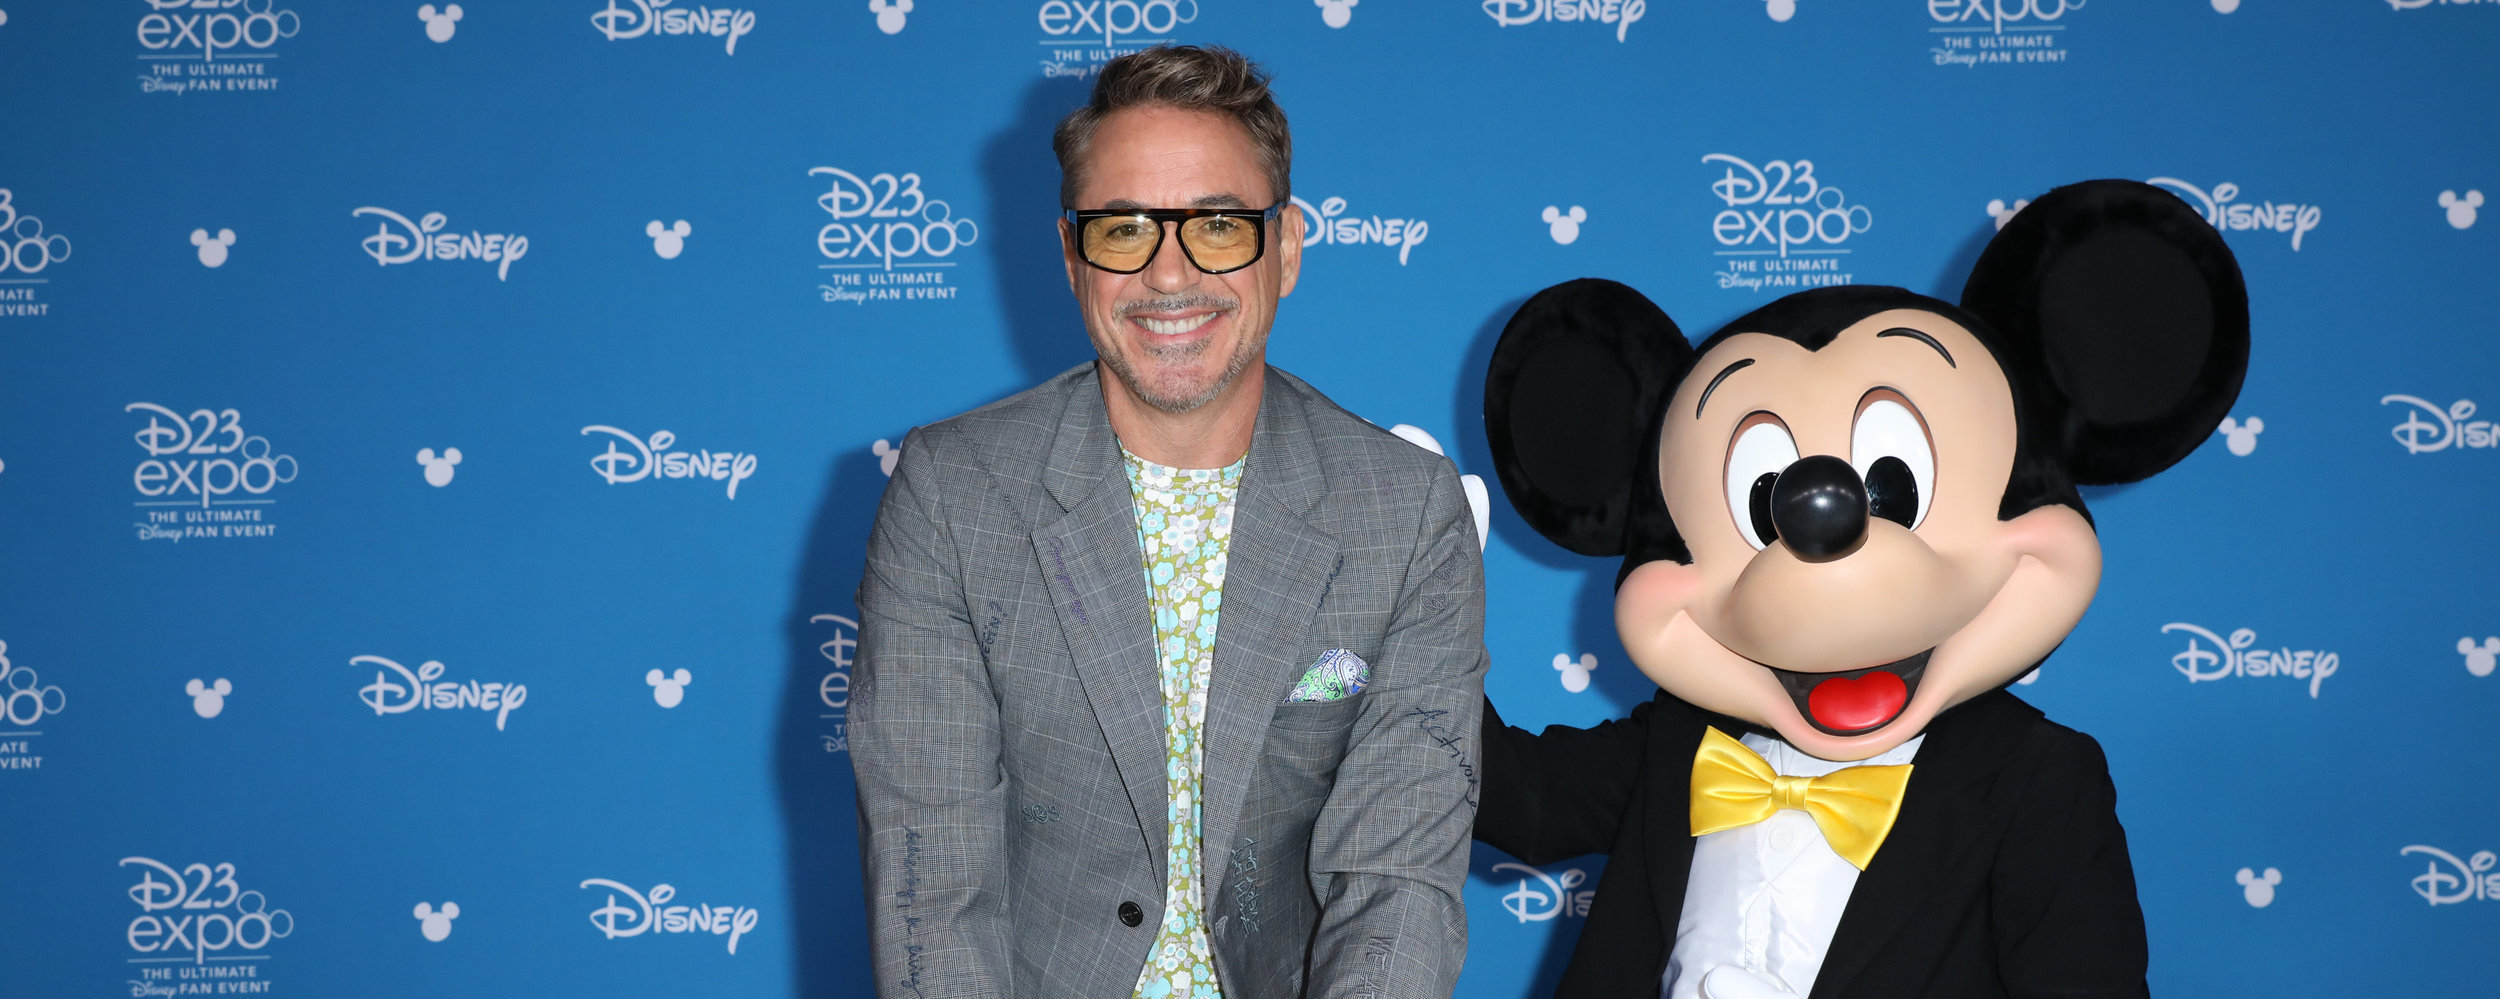 Robert Downey Jr. and Mickey